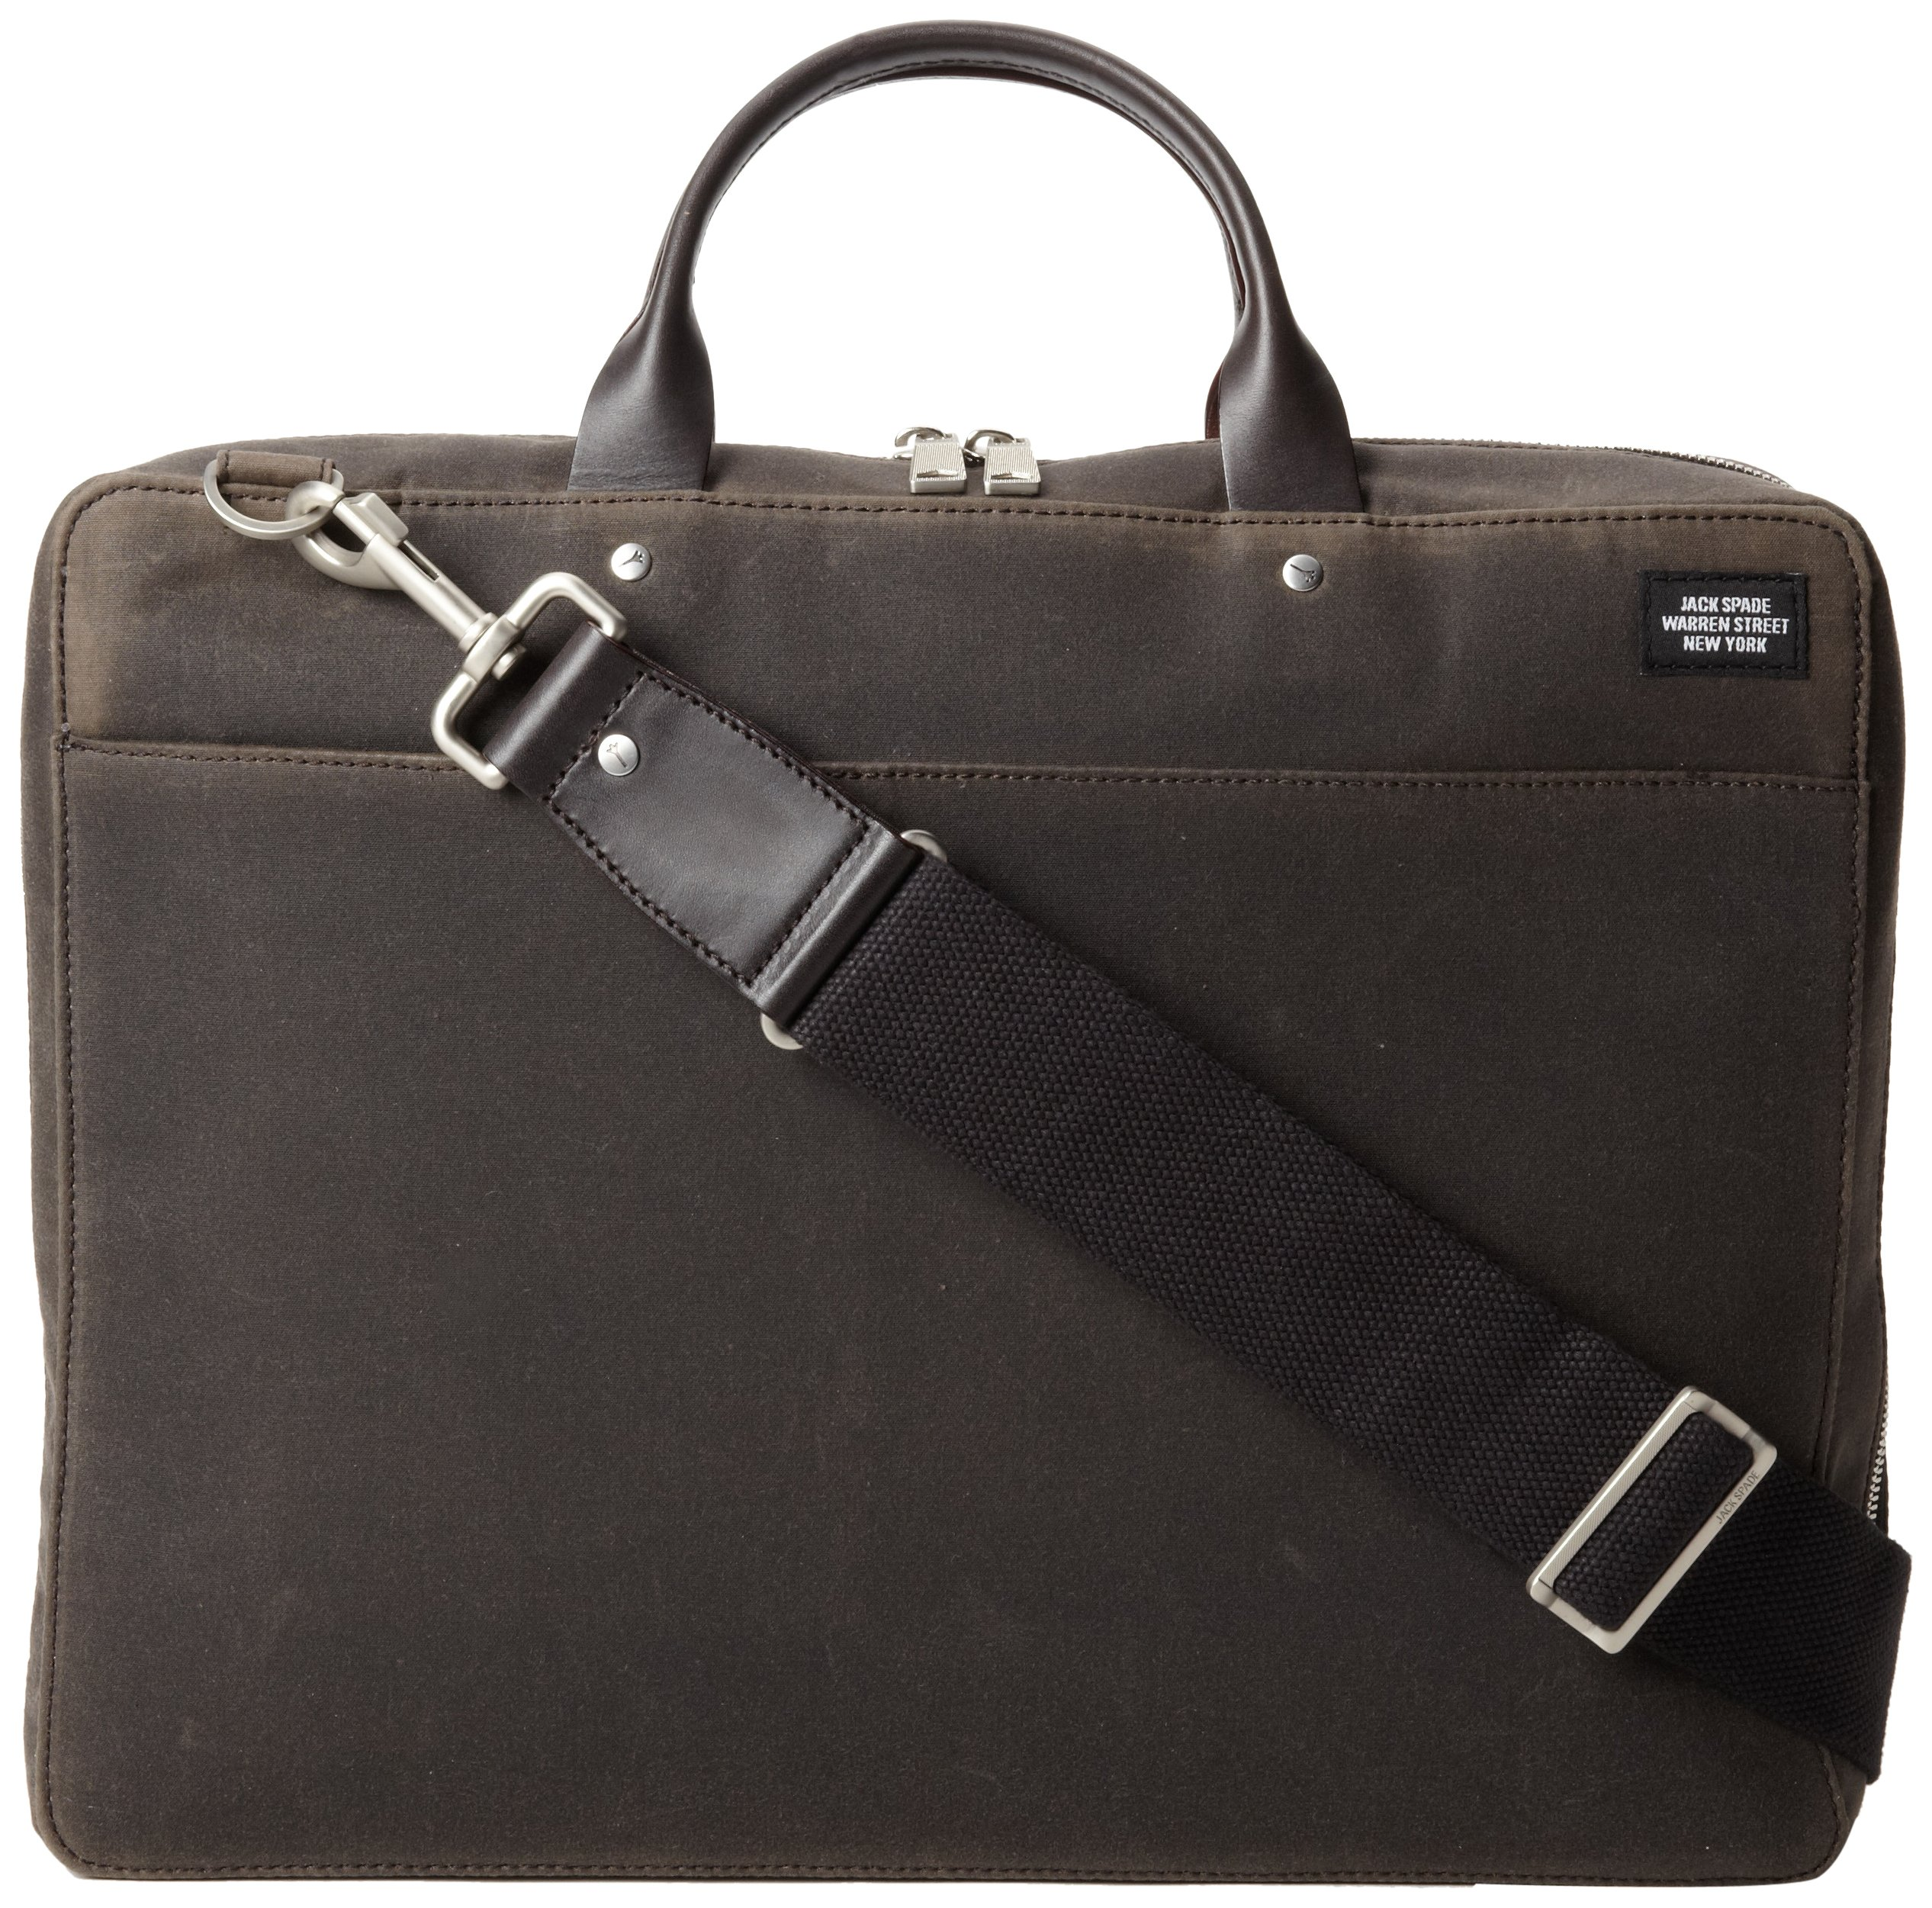 Jack Spade Men's Waxwear Laptop Case,Chocolate,One Size by Jack Spade